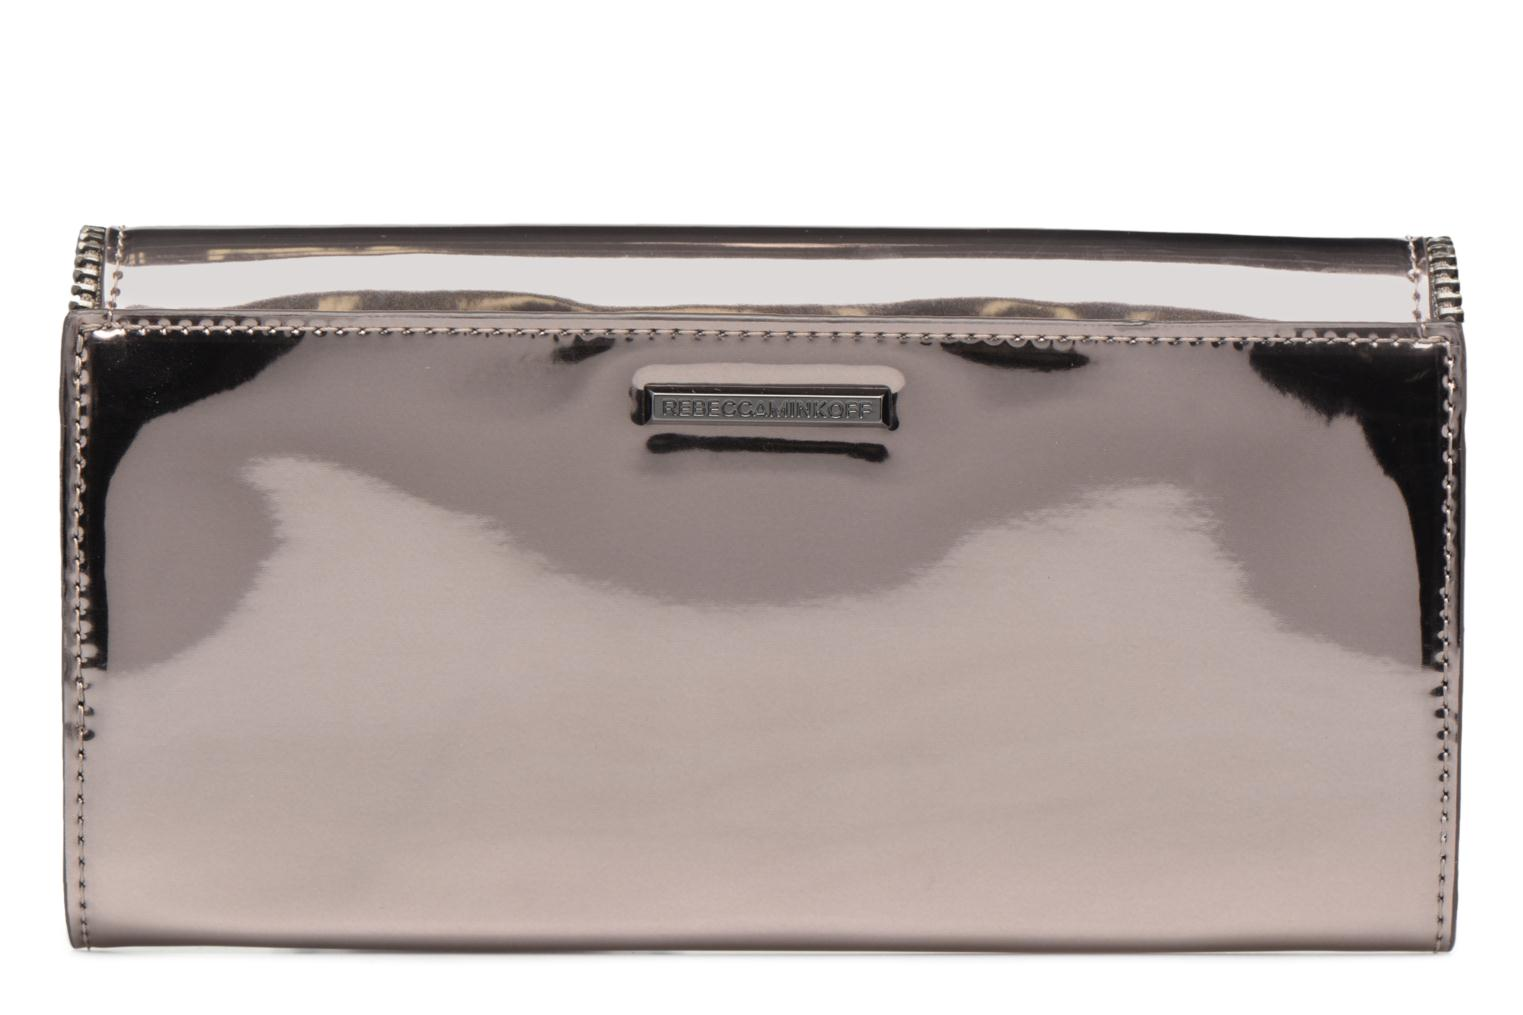 Petite Maroquinerie Rebecca Minkoff METALLIC LARGE WALLET Gris vue face